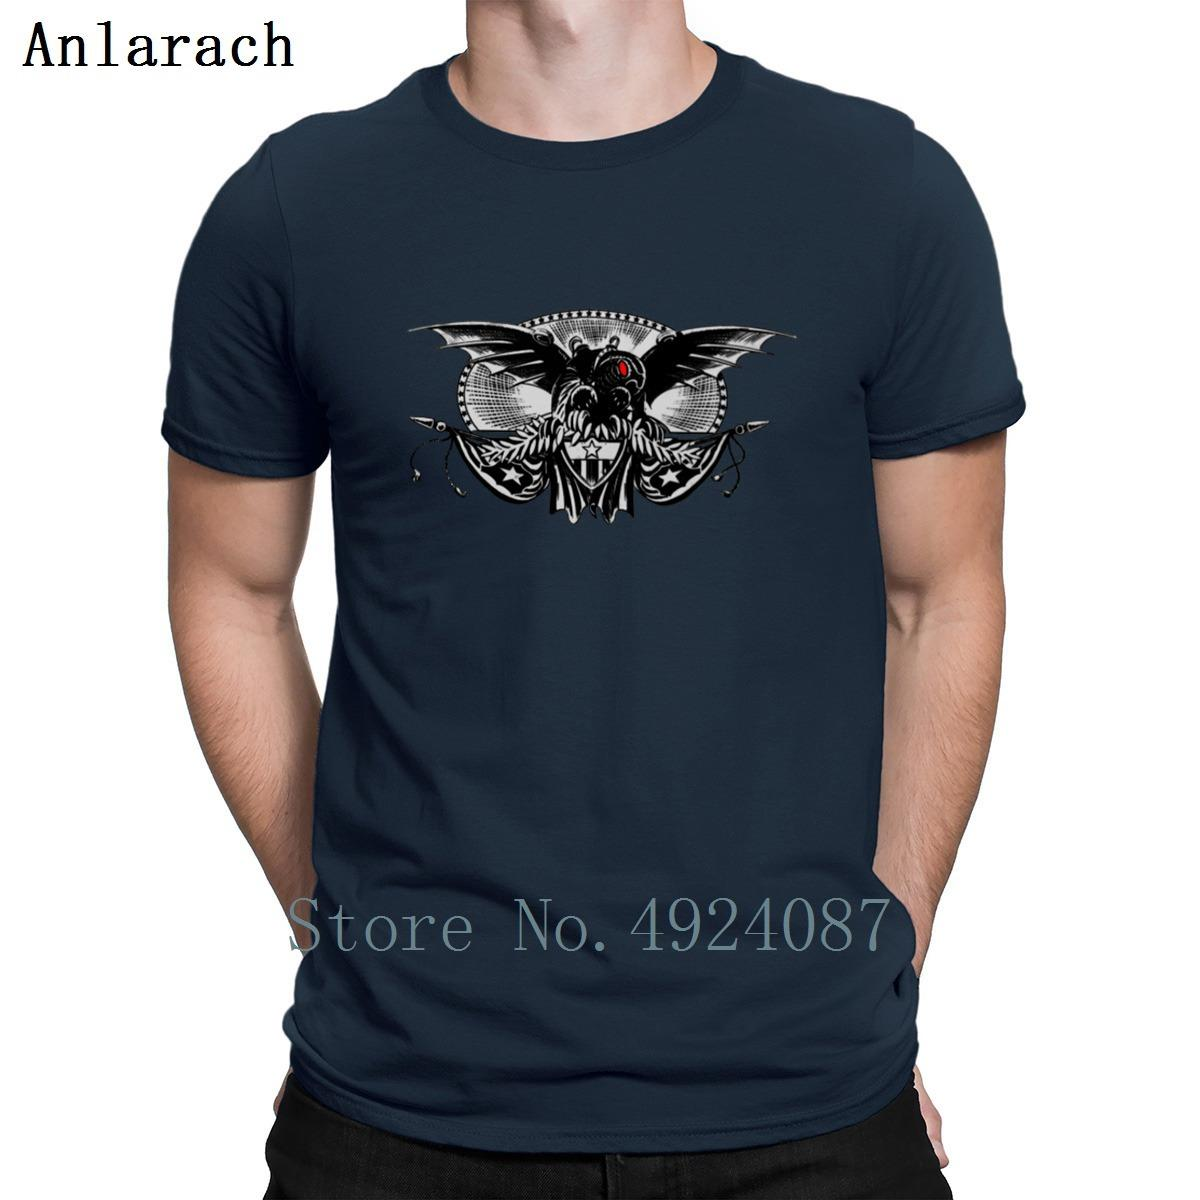 Bioshock Songbird Crests T Shirt Building Interesting Tee Tops Sunlight Mens Tee Shirts Family Crew Neck Letters Designs